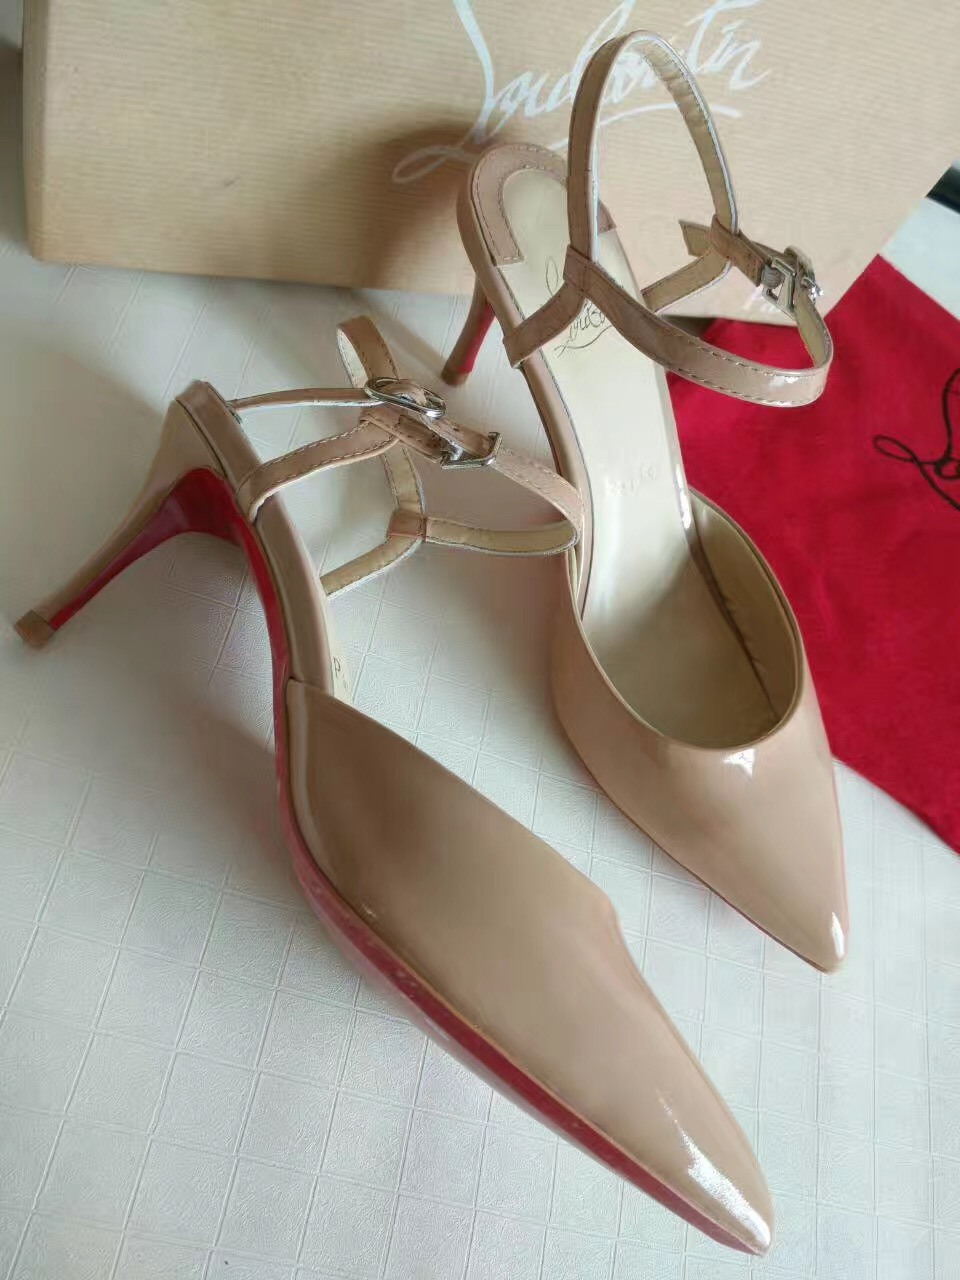 Christian Louboutin CL 13cm heels sandals soled red shoes